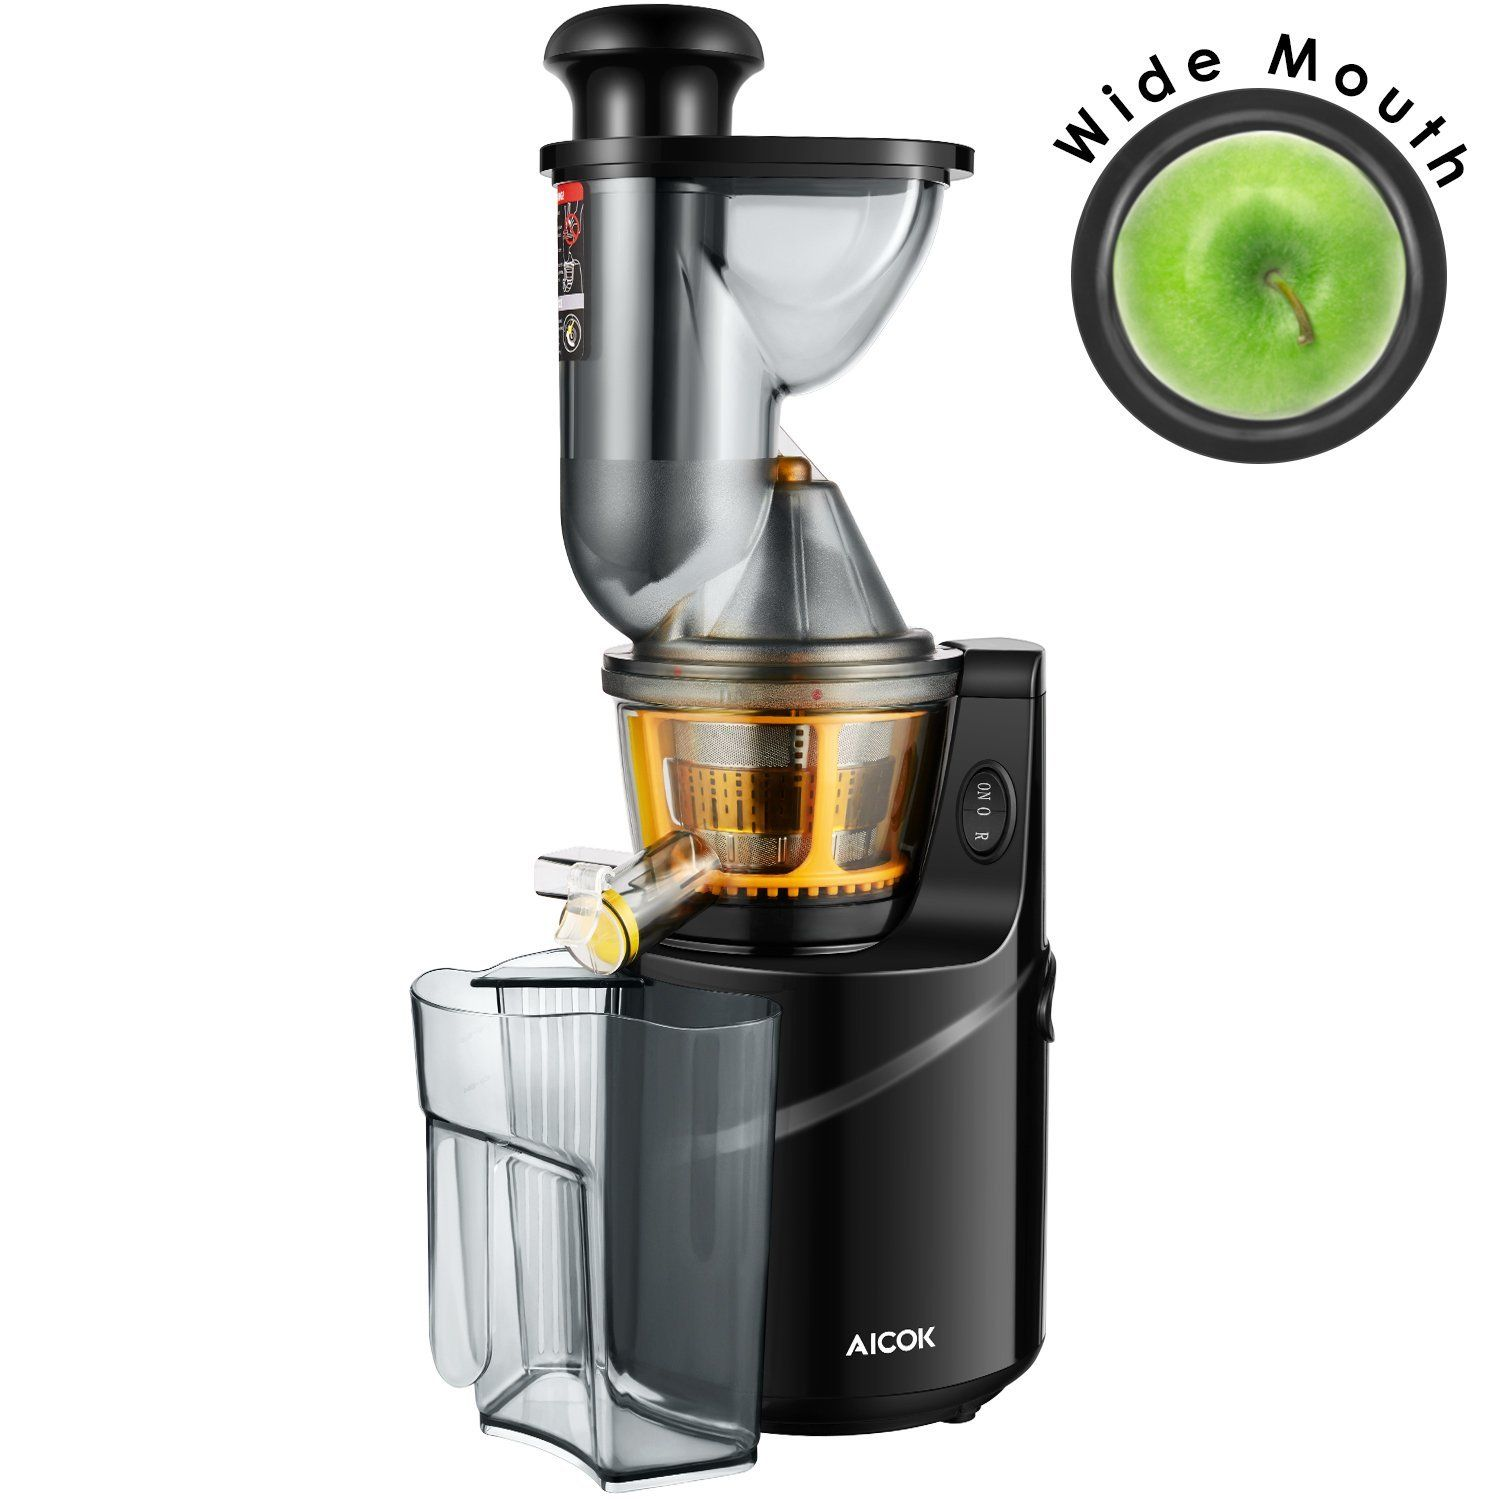 Aicok Juicer, Whole Slow Masticating Juicer, 75MM Wide Mouth